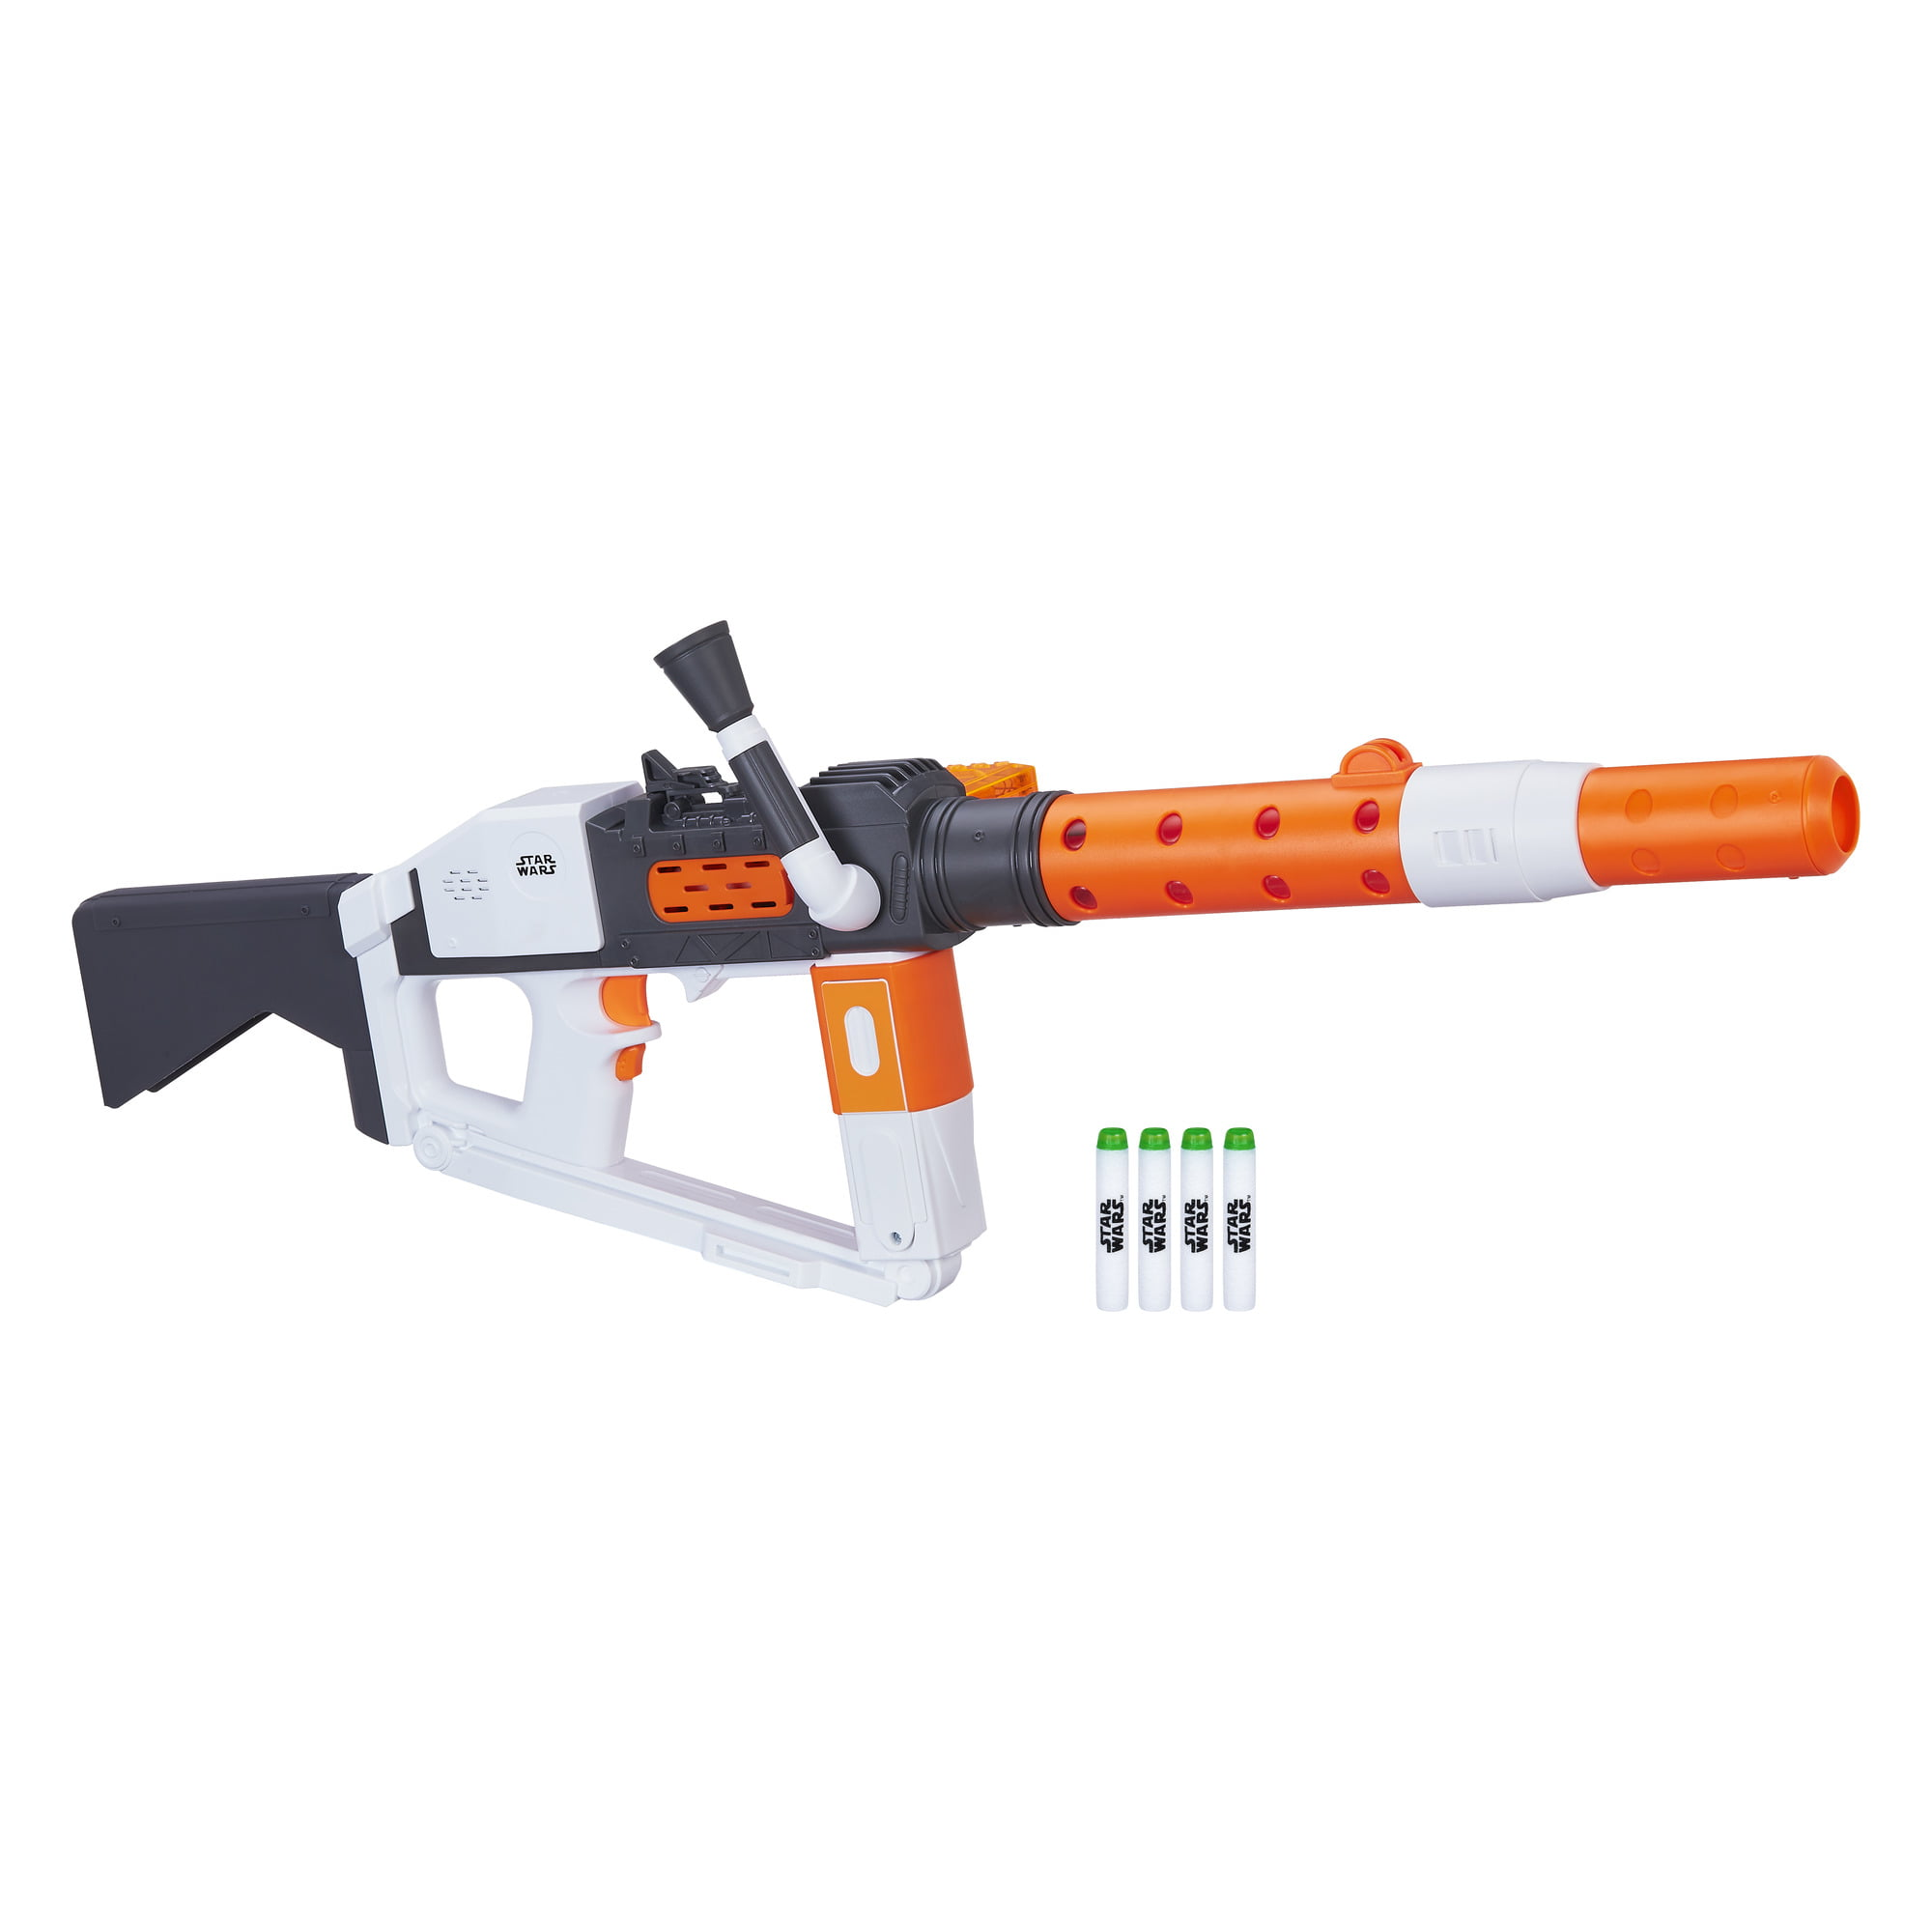 Star Wars Nerf First Order Stormtrooper Deluxe Blaster by Hasbro Inc.